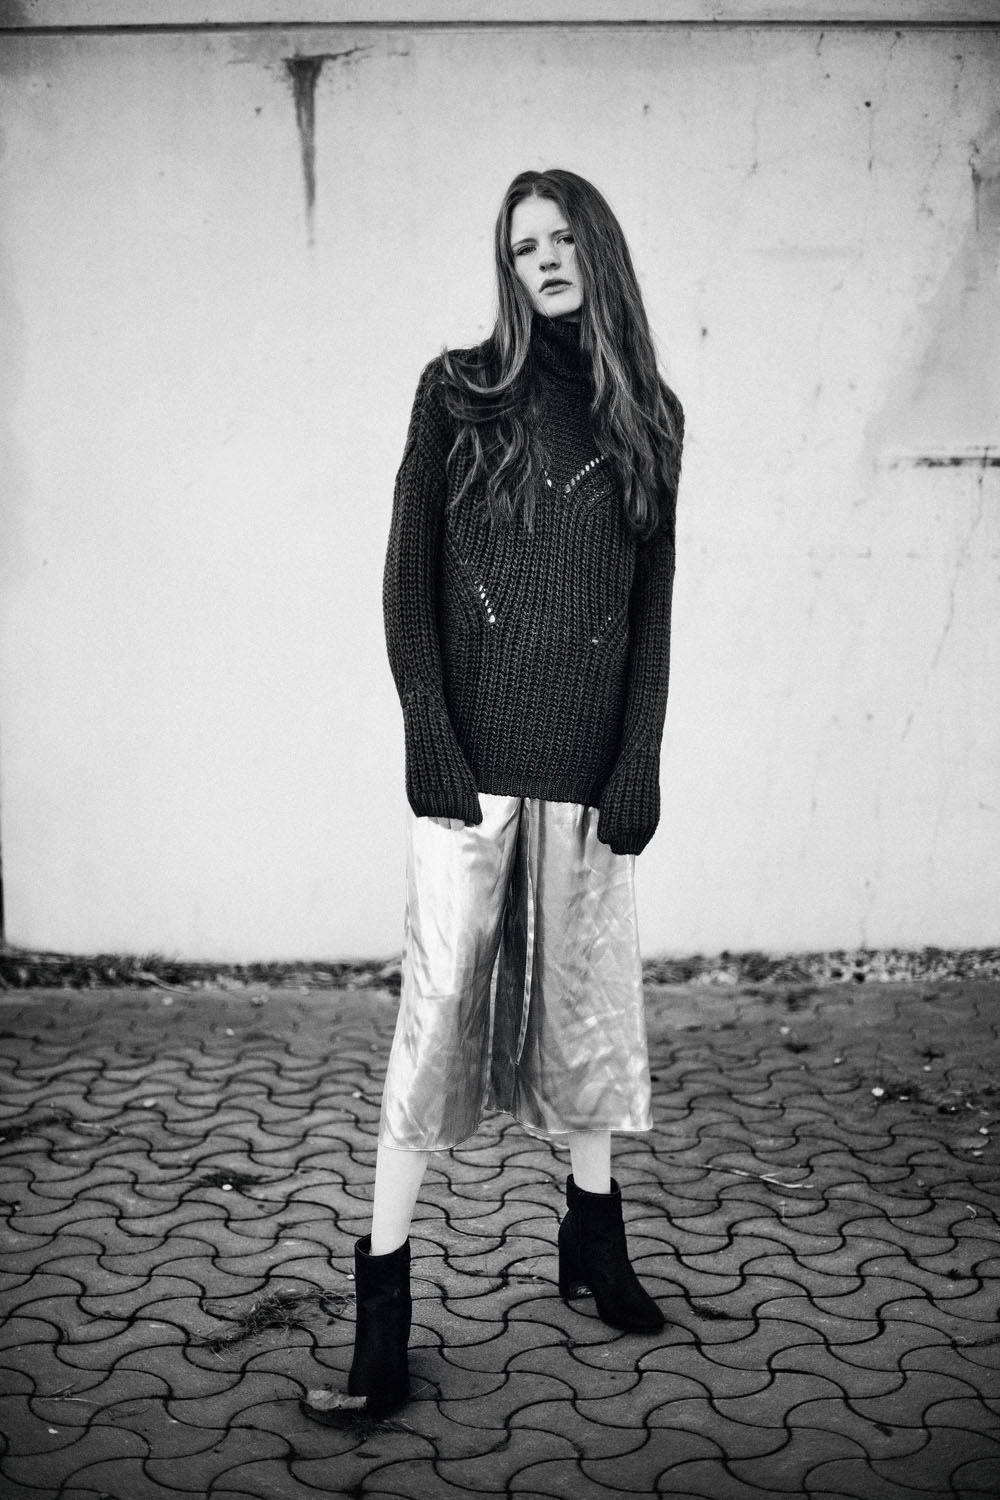 Monochrome moments by Veronika Bures for CHASSEUR MAGAZINE (12)